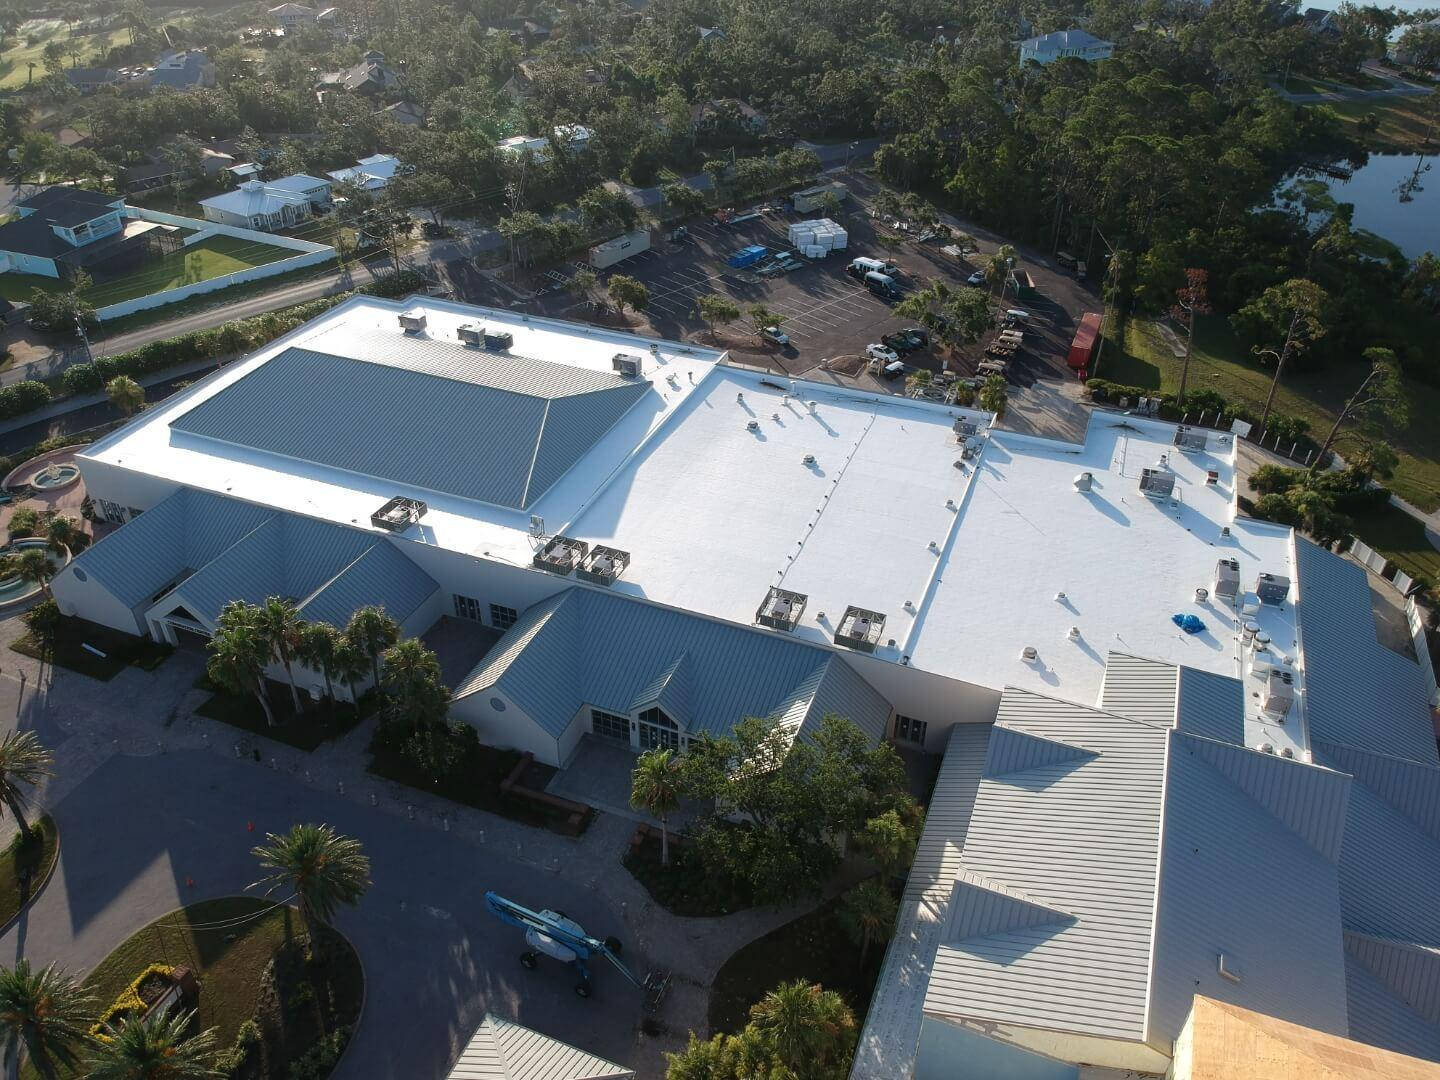 commercial roofer san antonio tx tpo flat epdm roof repair free inspection best companies near me services san antonio commercial roofing company image2